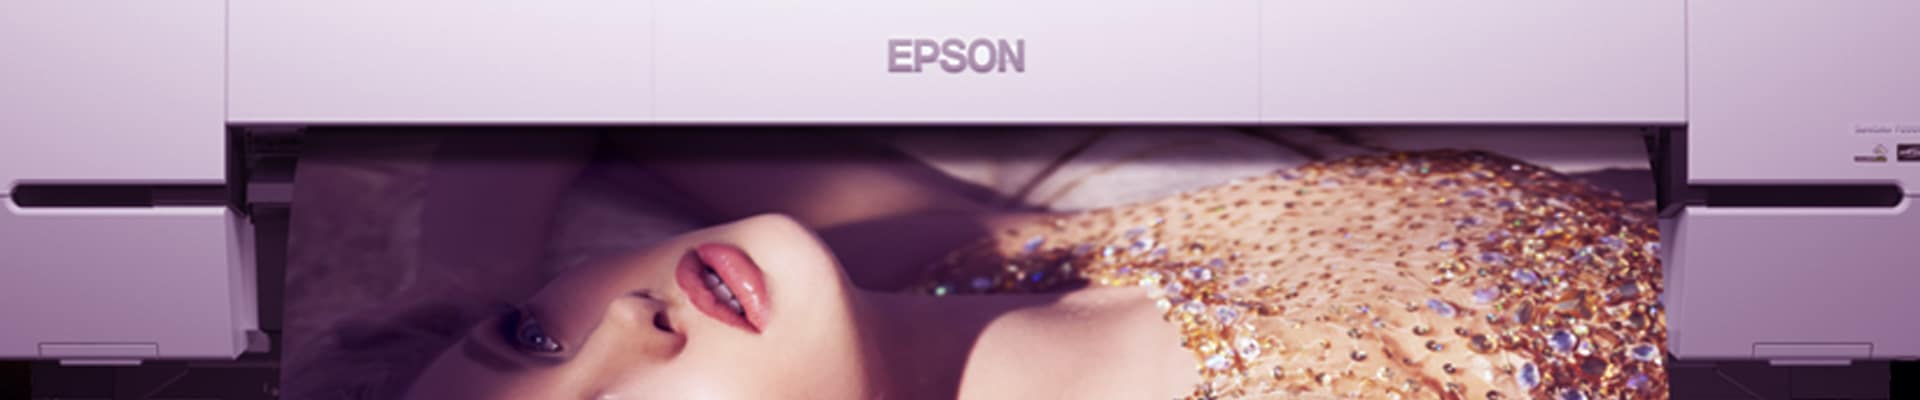 Epson Colour Proofing